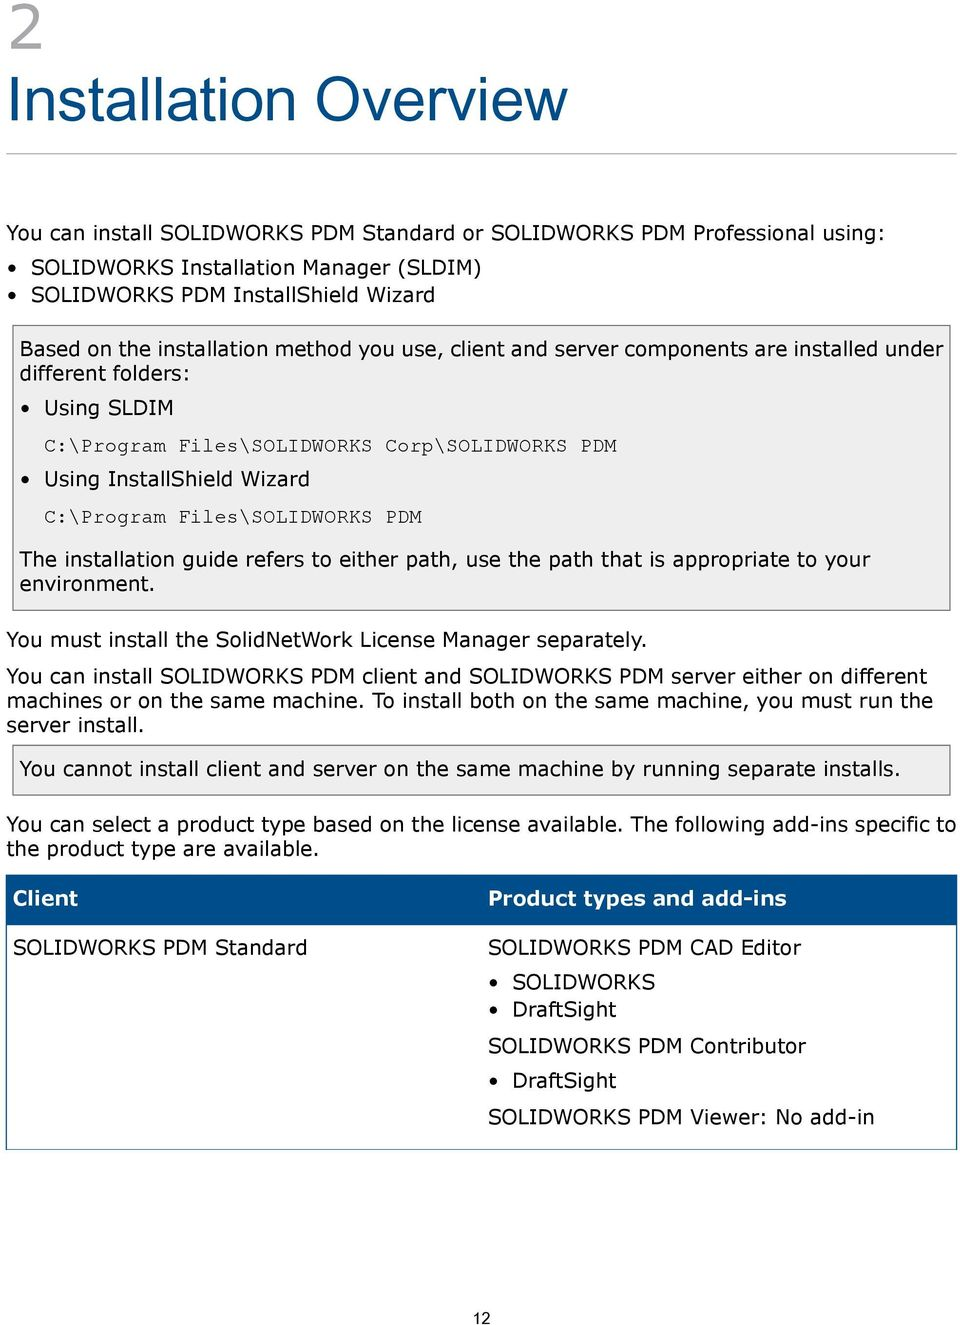 Installation instructions for solidworks products mlc cad systems.